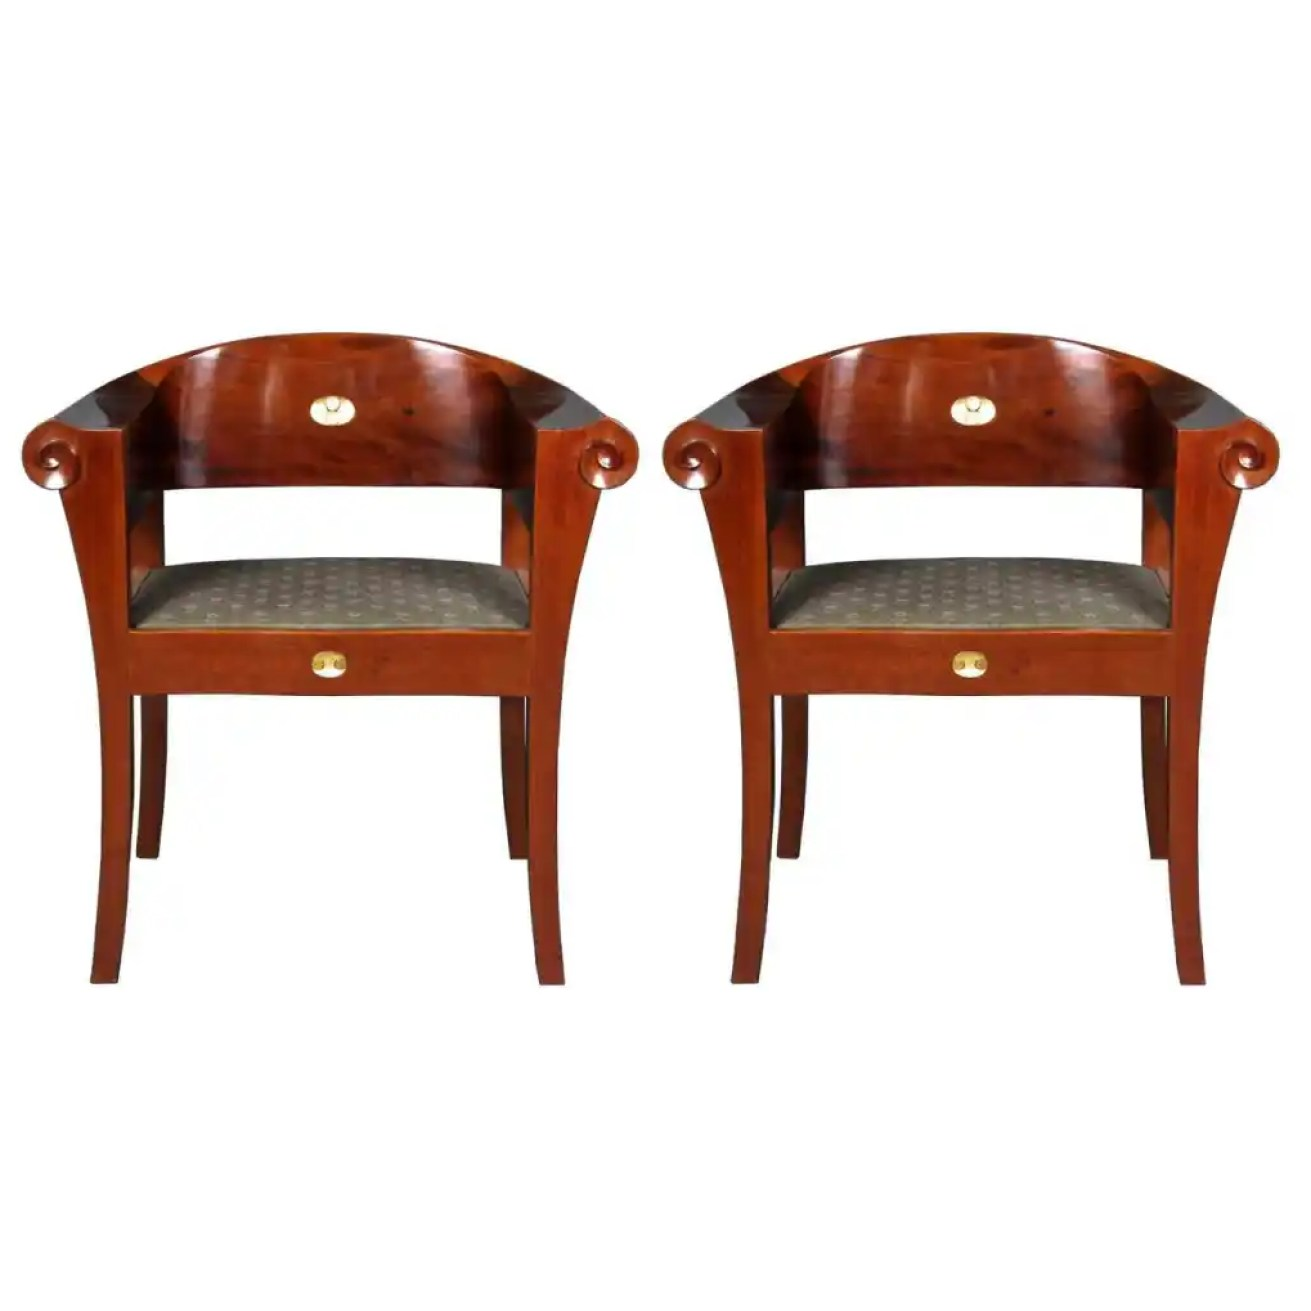 Pair of armchairs designed by Johan Rohde